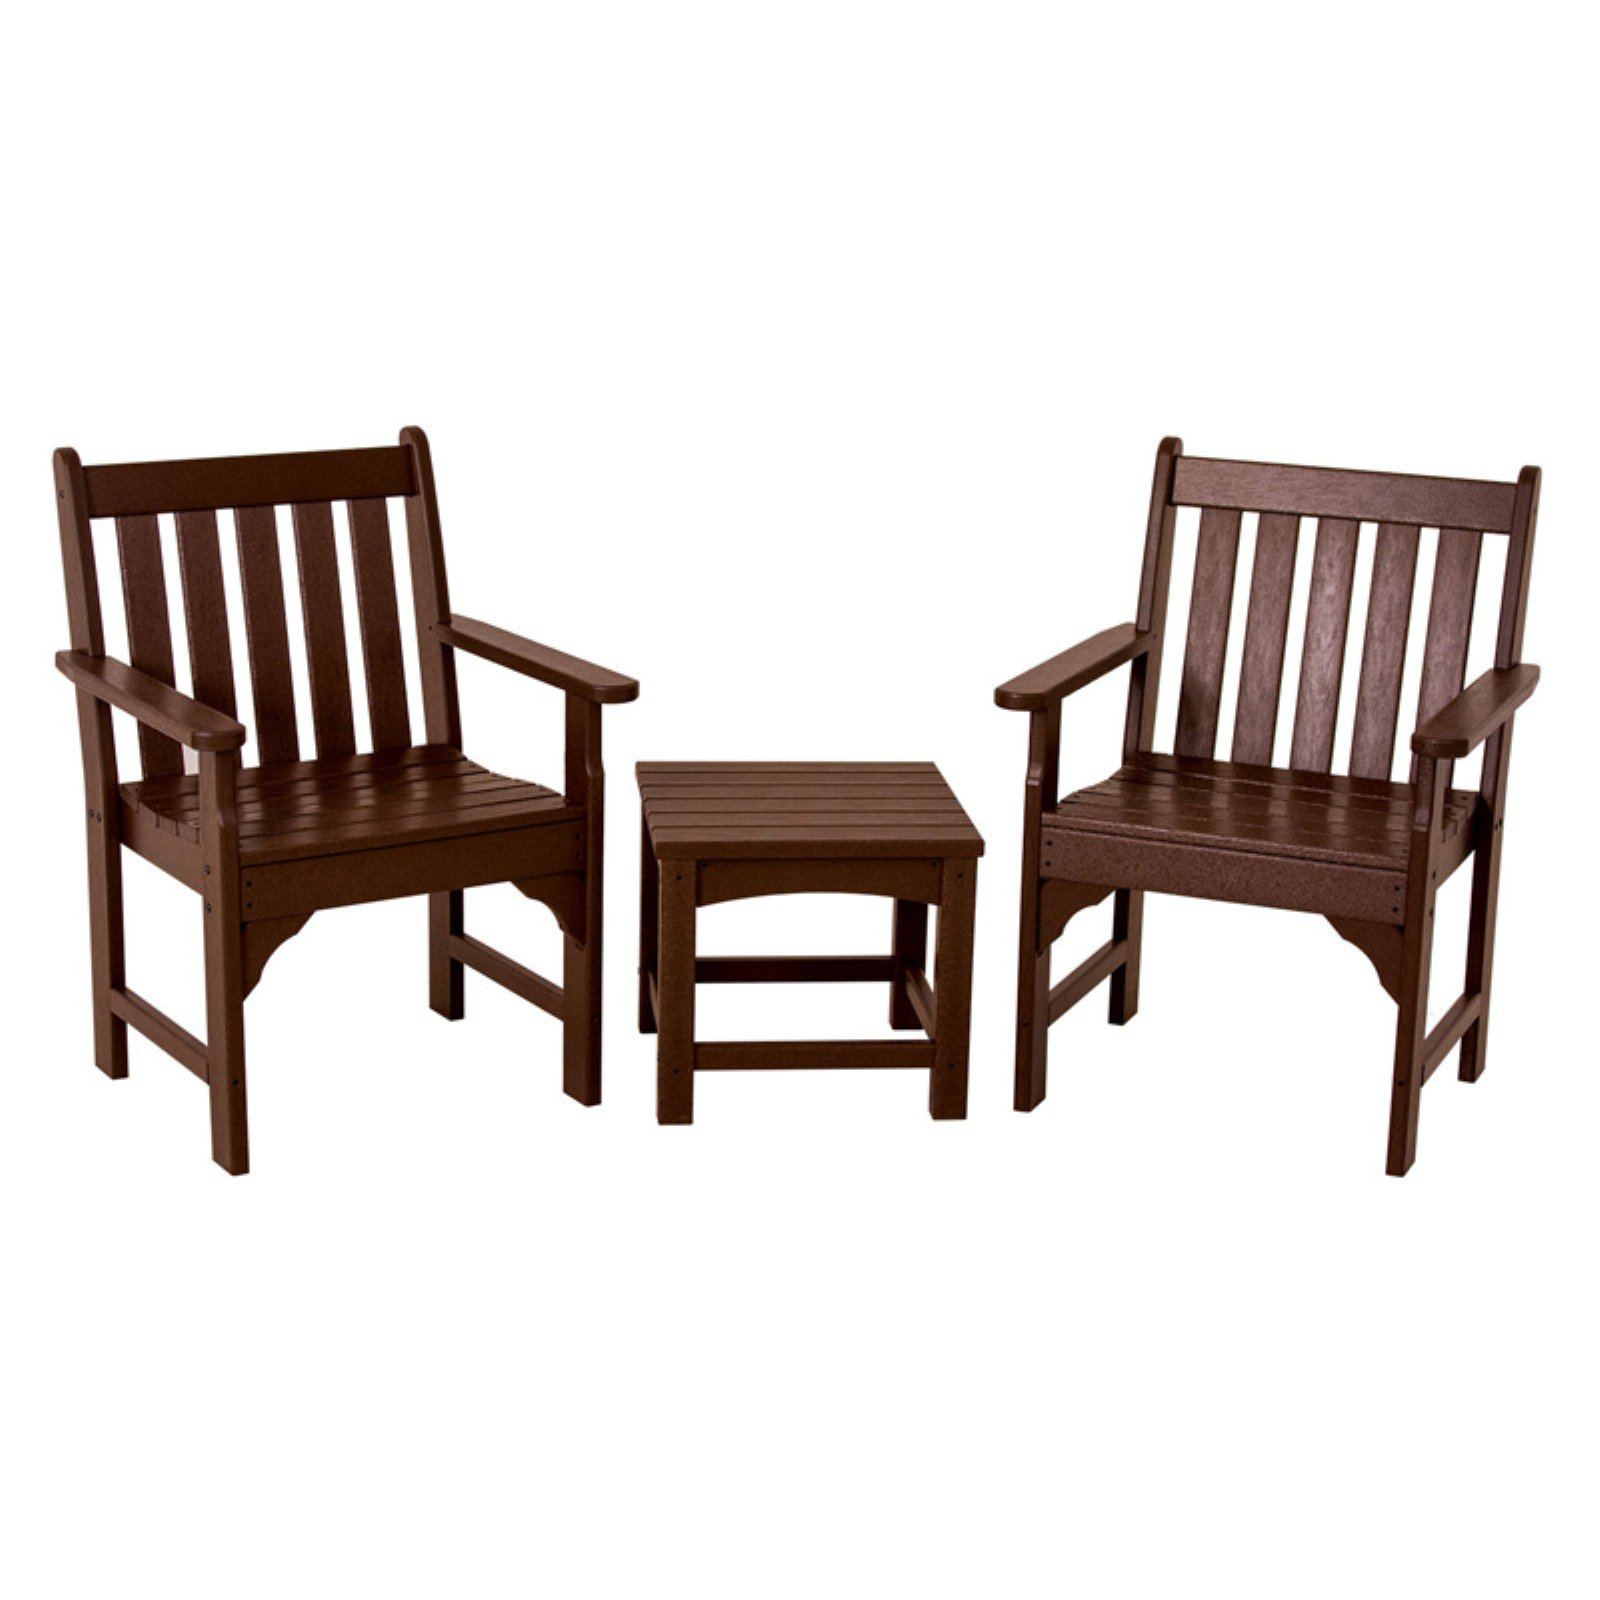 POLYWOOD® Vineyard Recycled Plastic 3 pc. Garden Chair Set